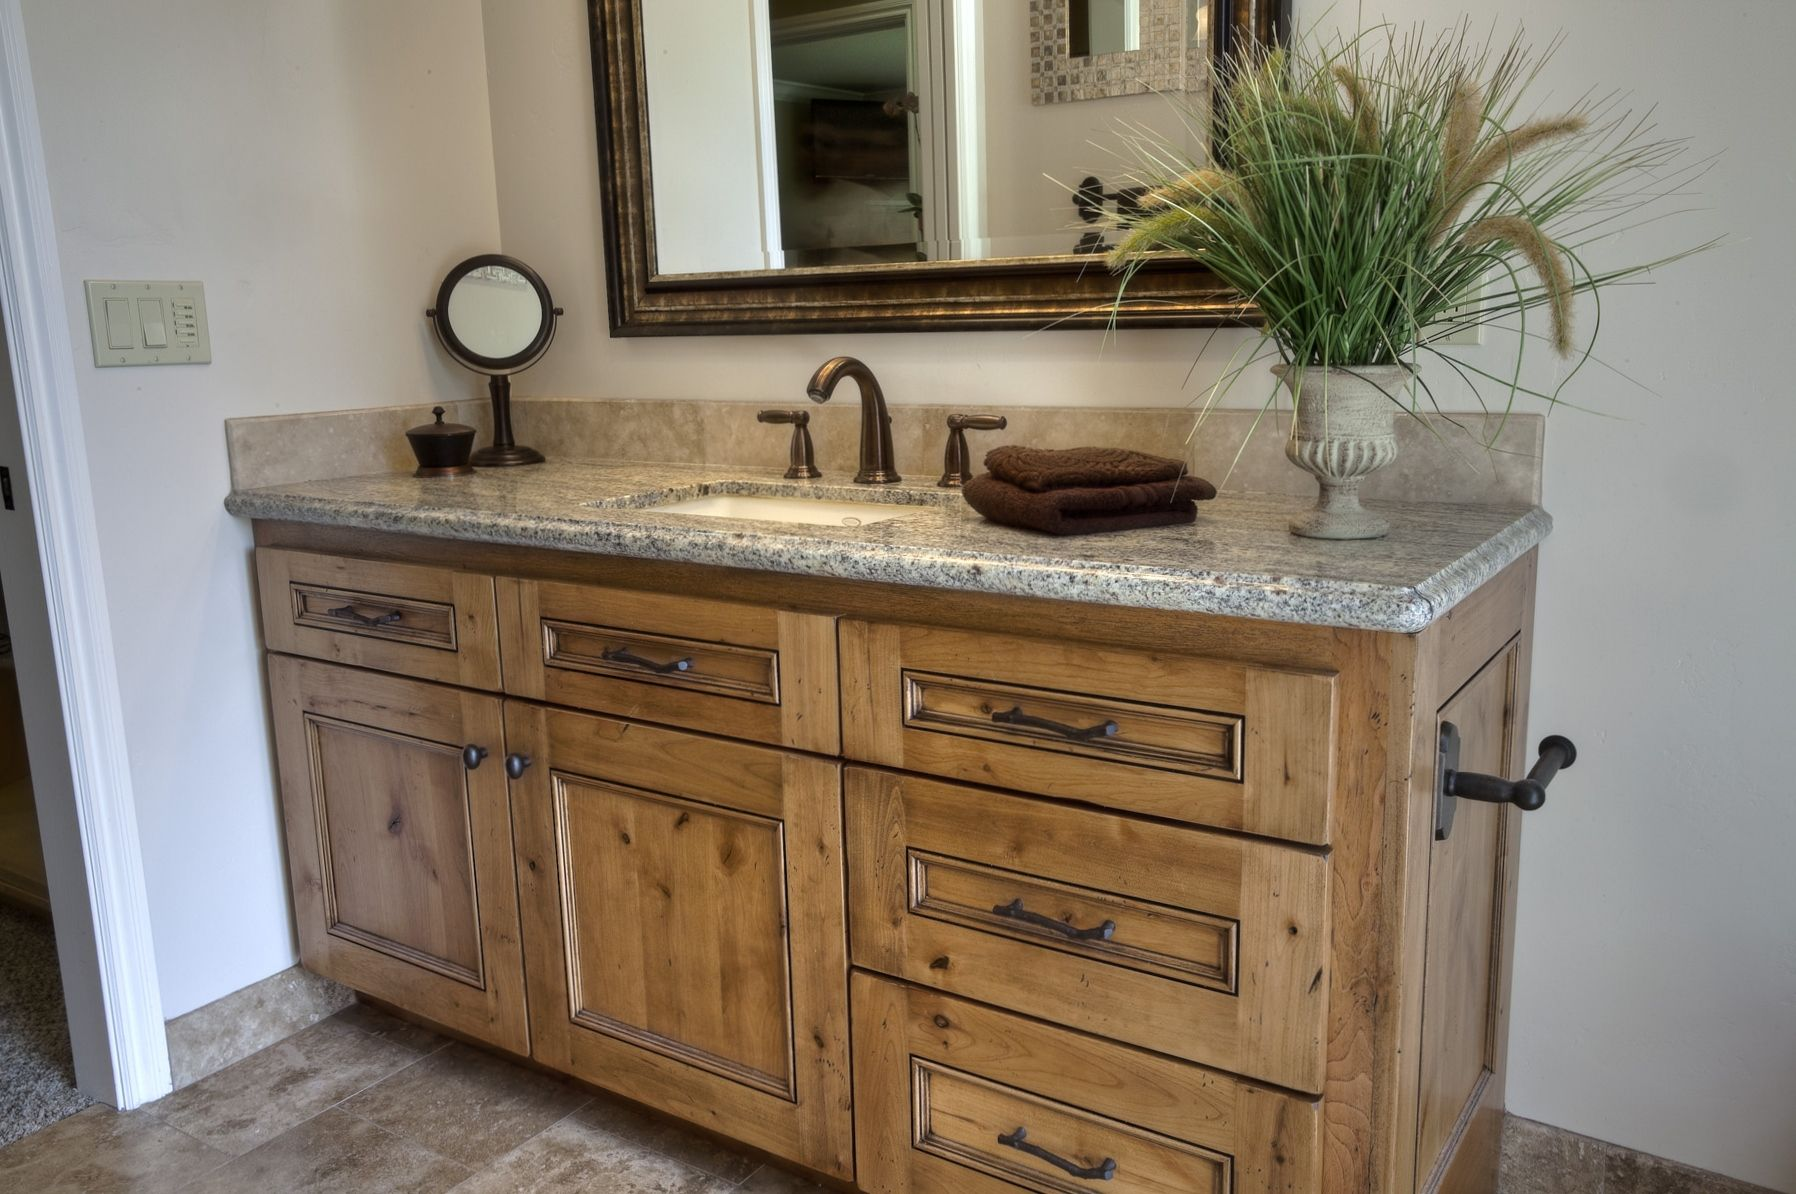 Rustic Knotty Alder With Stain And Glaze Finish By Shaw Cabinetry Woodworks Half Moon Rustic Bathroom Vanities Kitchen Sink Design Country Bathroom Vanities